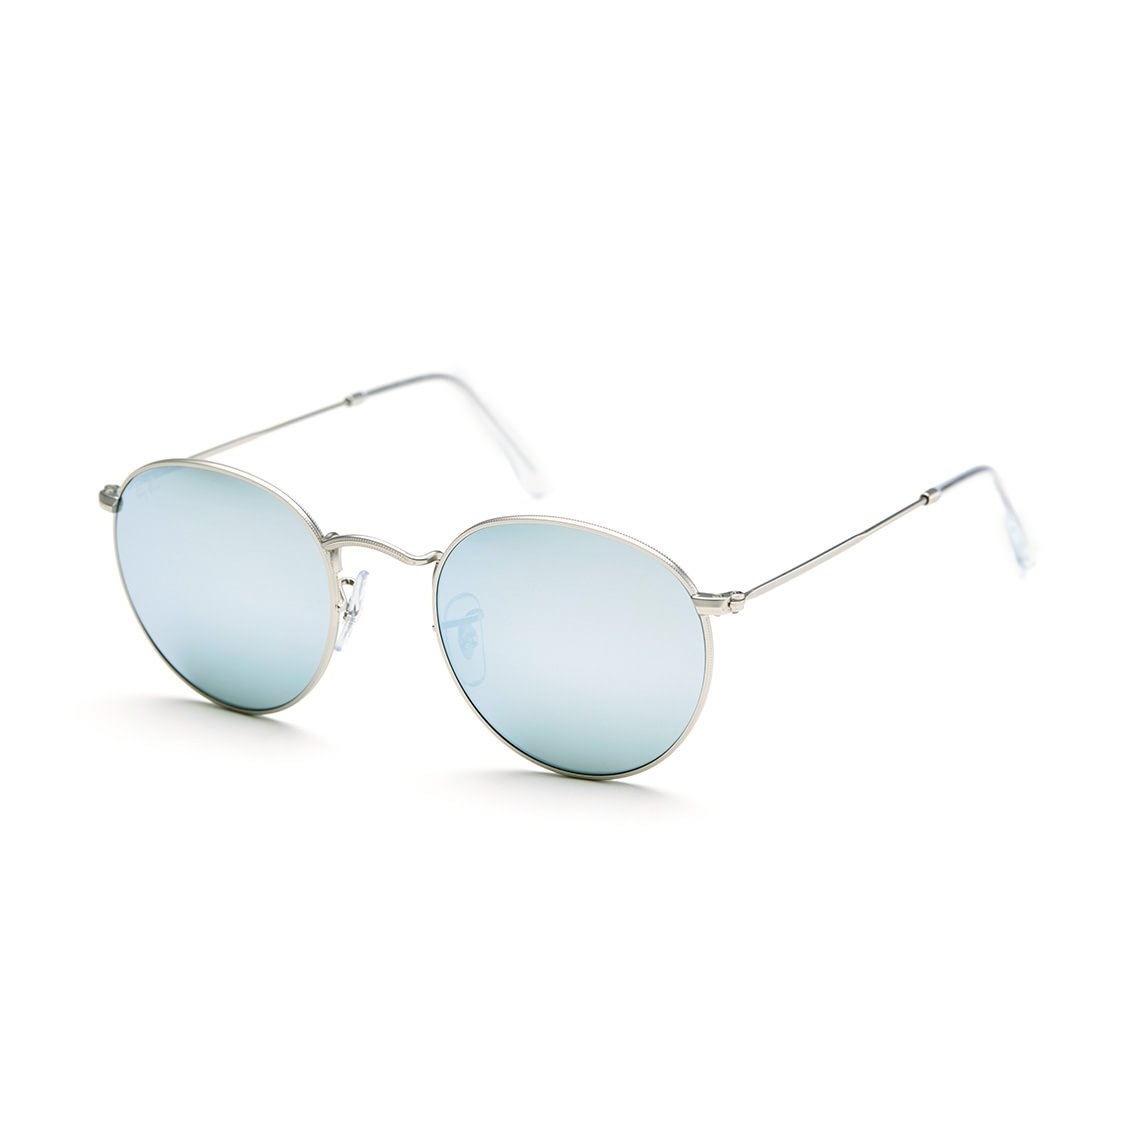 Ray-Ban Round metal flash lenses RB3447 019 30 50 - Synsam 6403991337d44